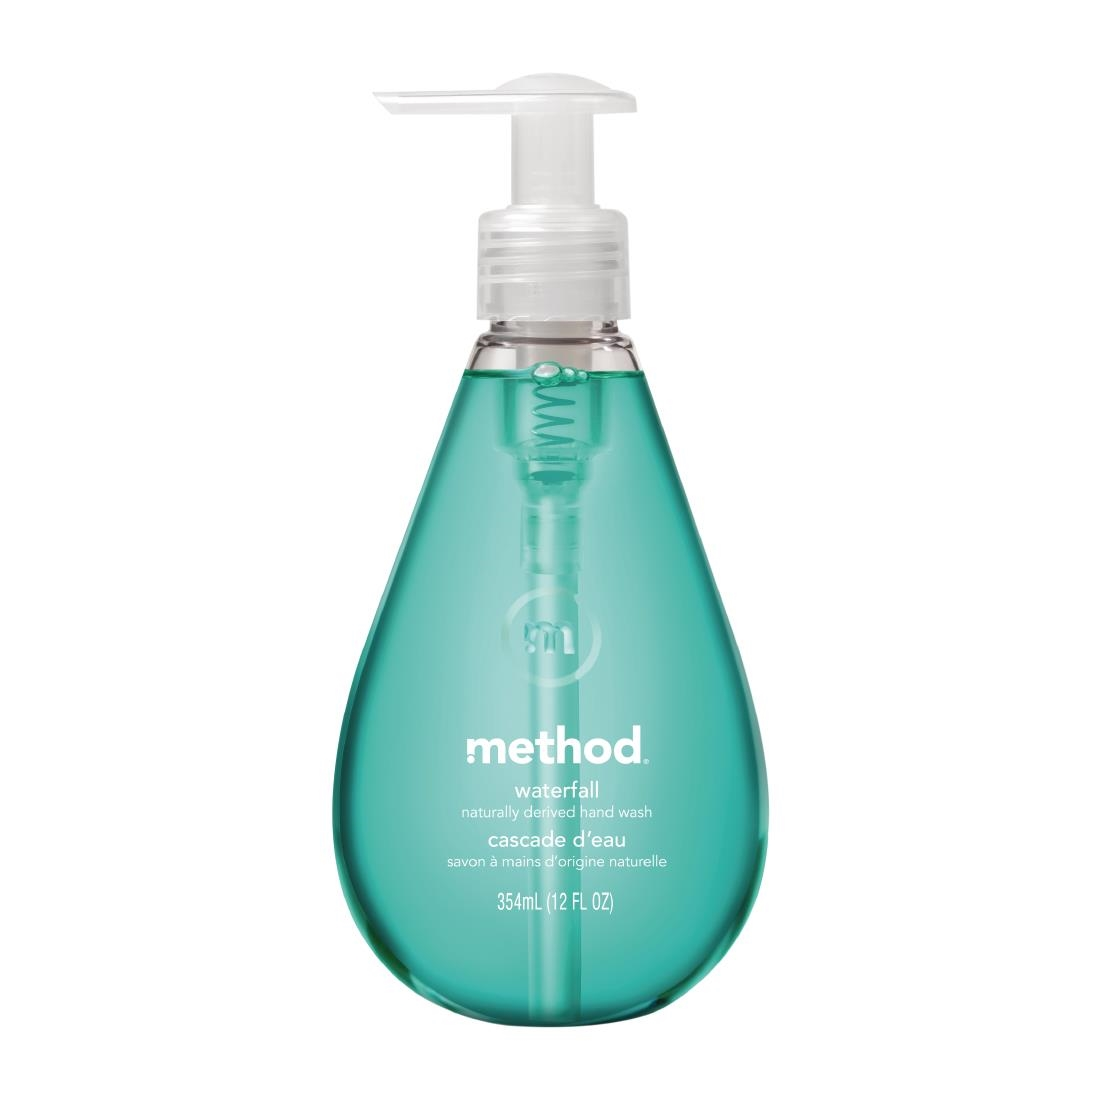 Image of Method Perfumed Liquid Hand Soap Waterfall 354ml (6 Pack) Pack of 6